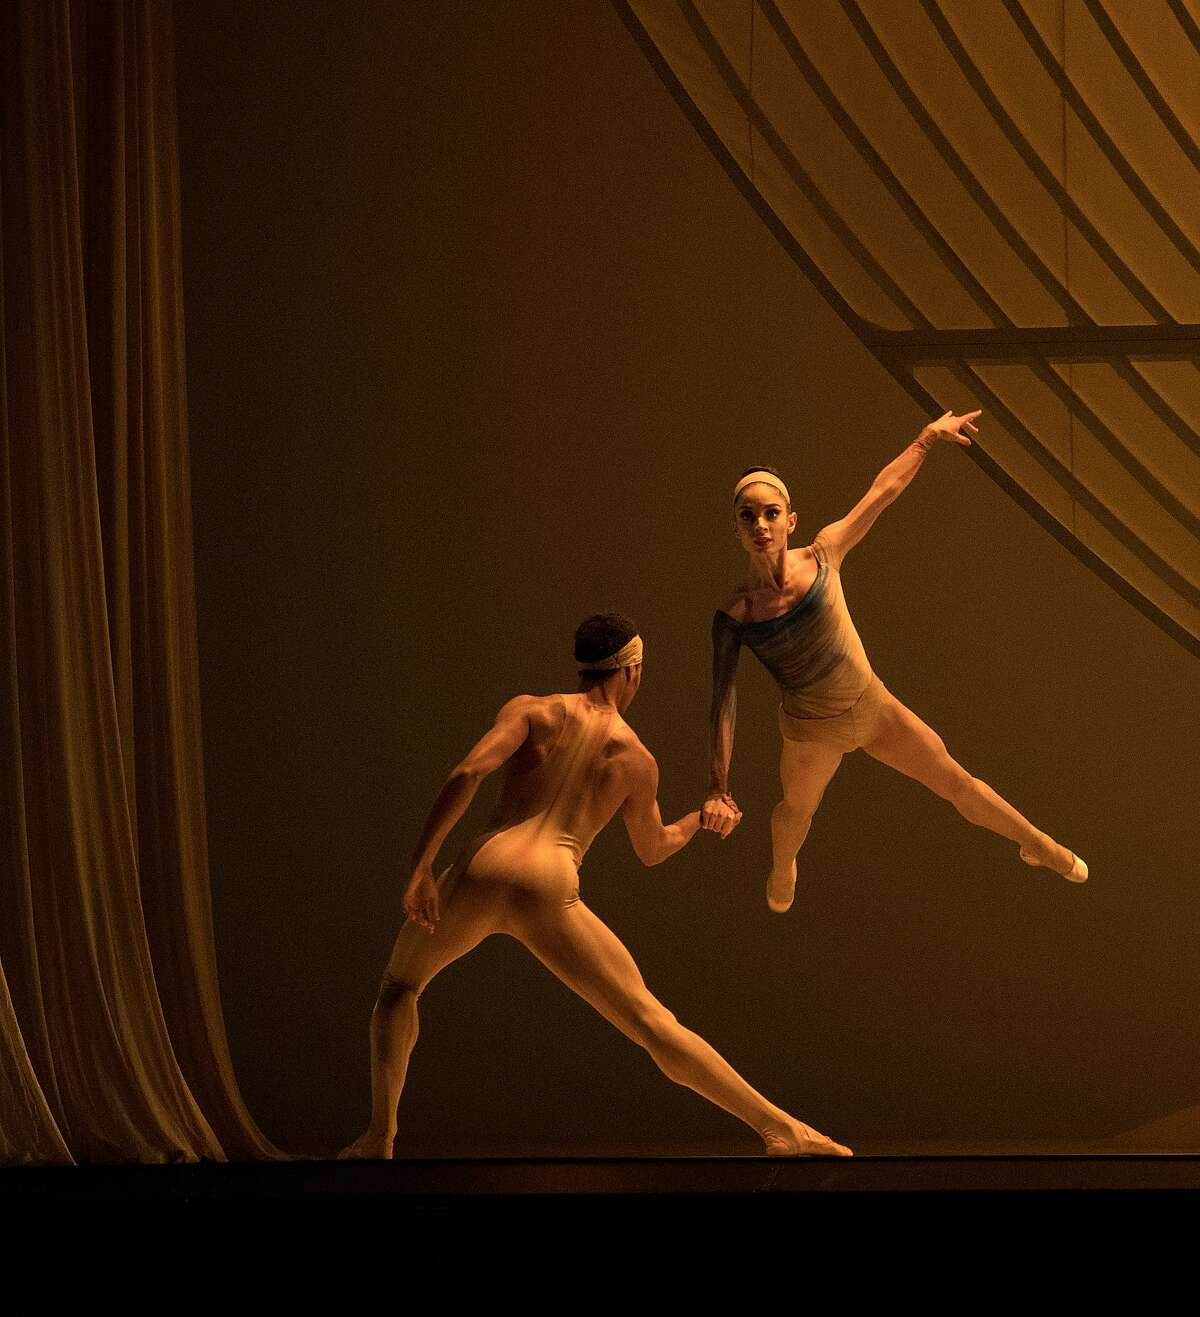 Francisco Mungamba (L) lifts Doris Andre (R) during a dress rehearsal of the San Francisco Ballet's Fragile Vessels on January 24, 2017 in San Francisco.